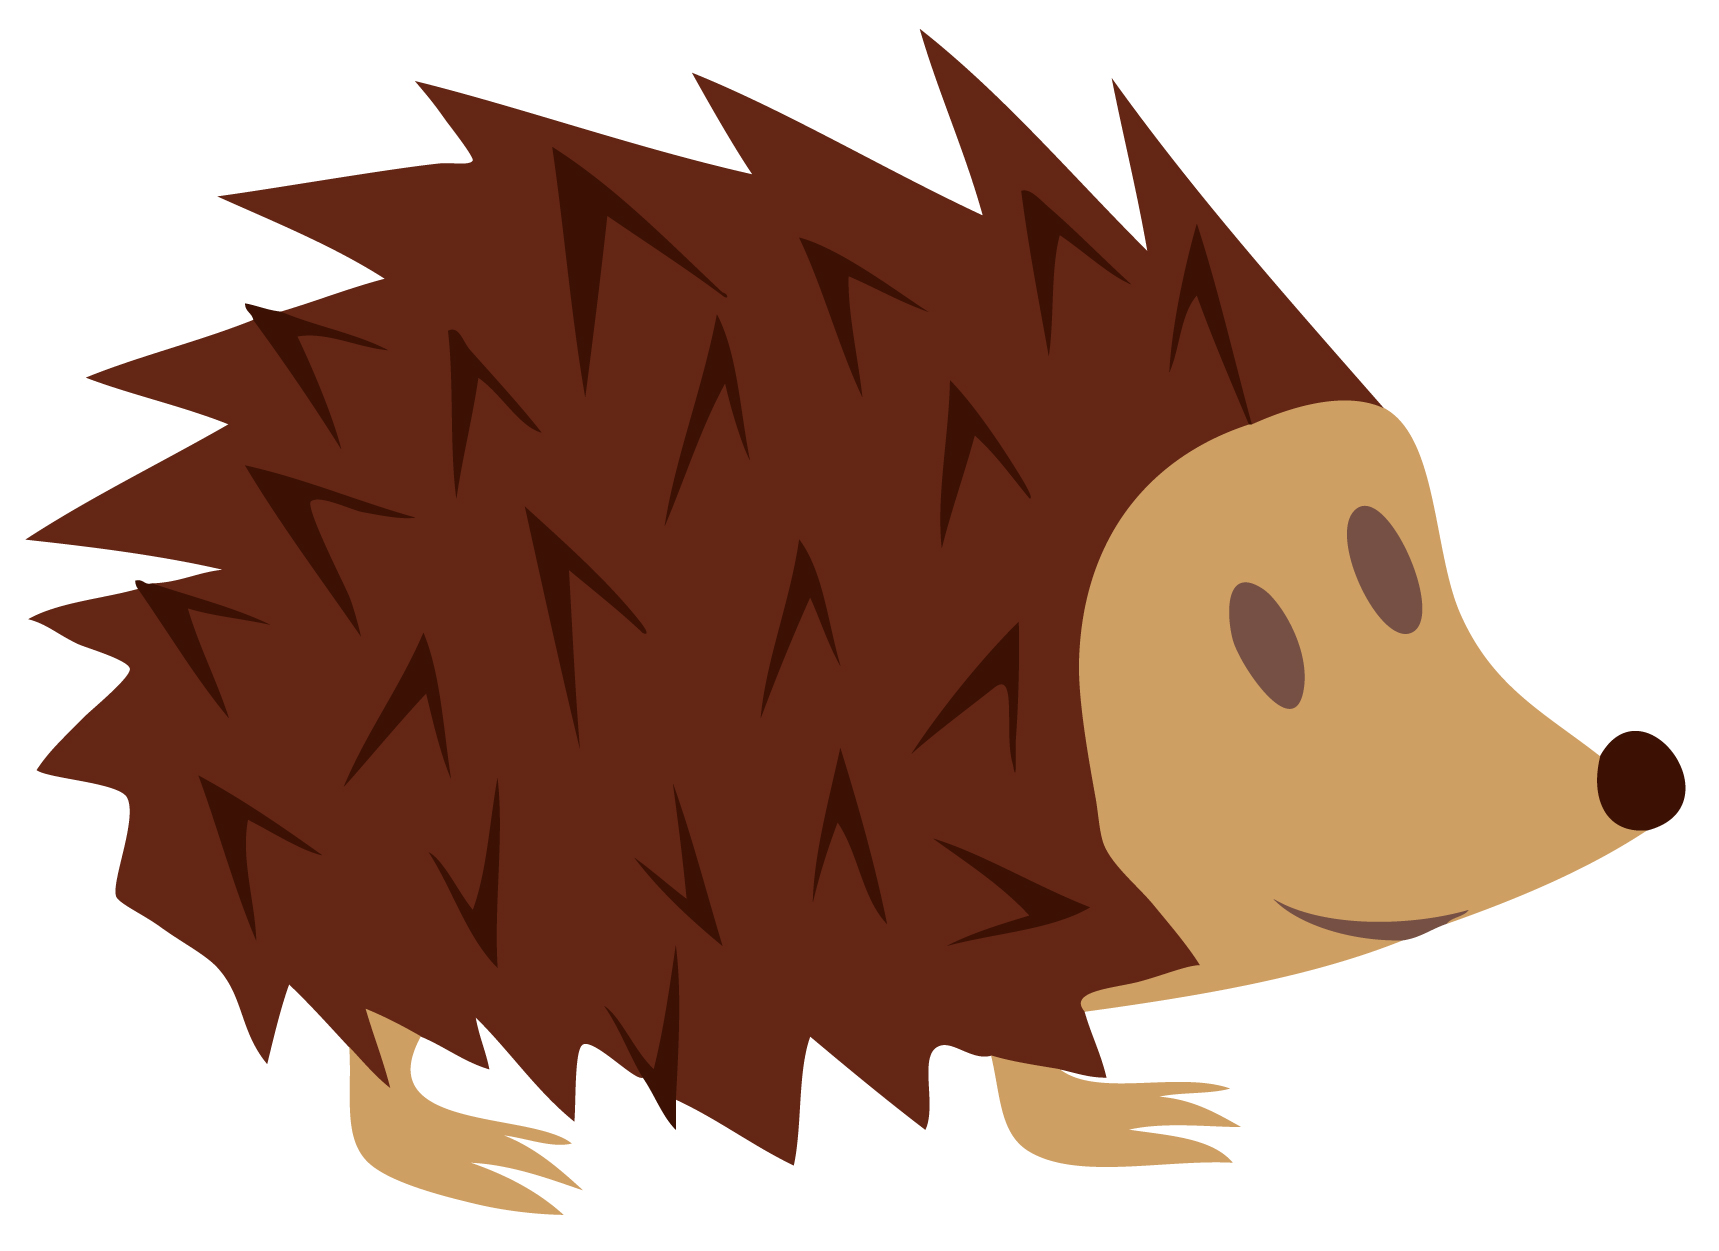 Hedgehog Free Early Years & Primary Teaching Resources